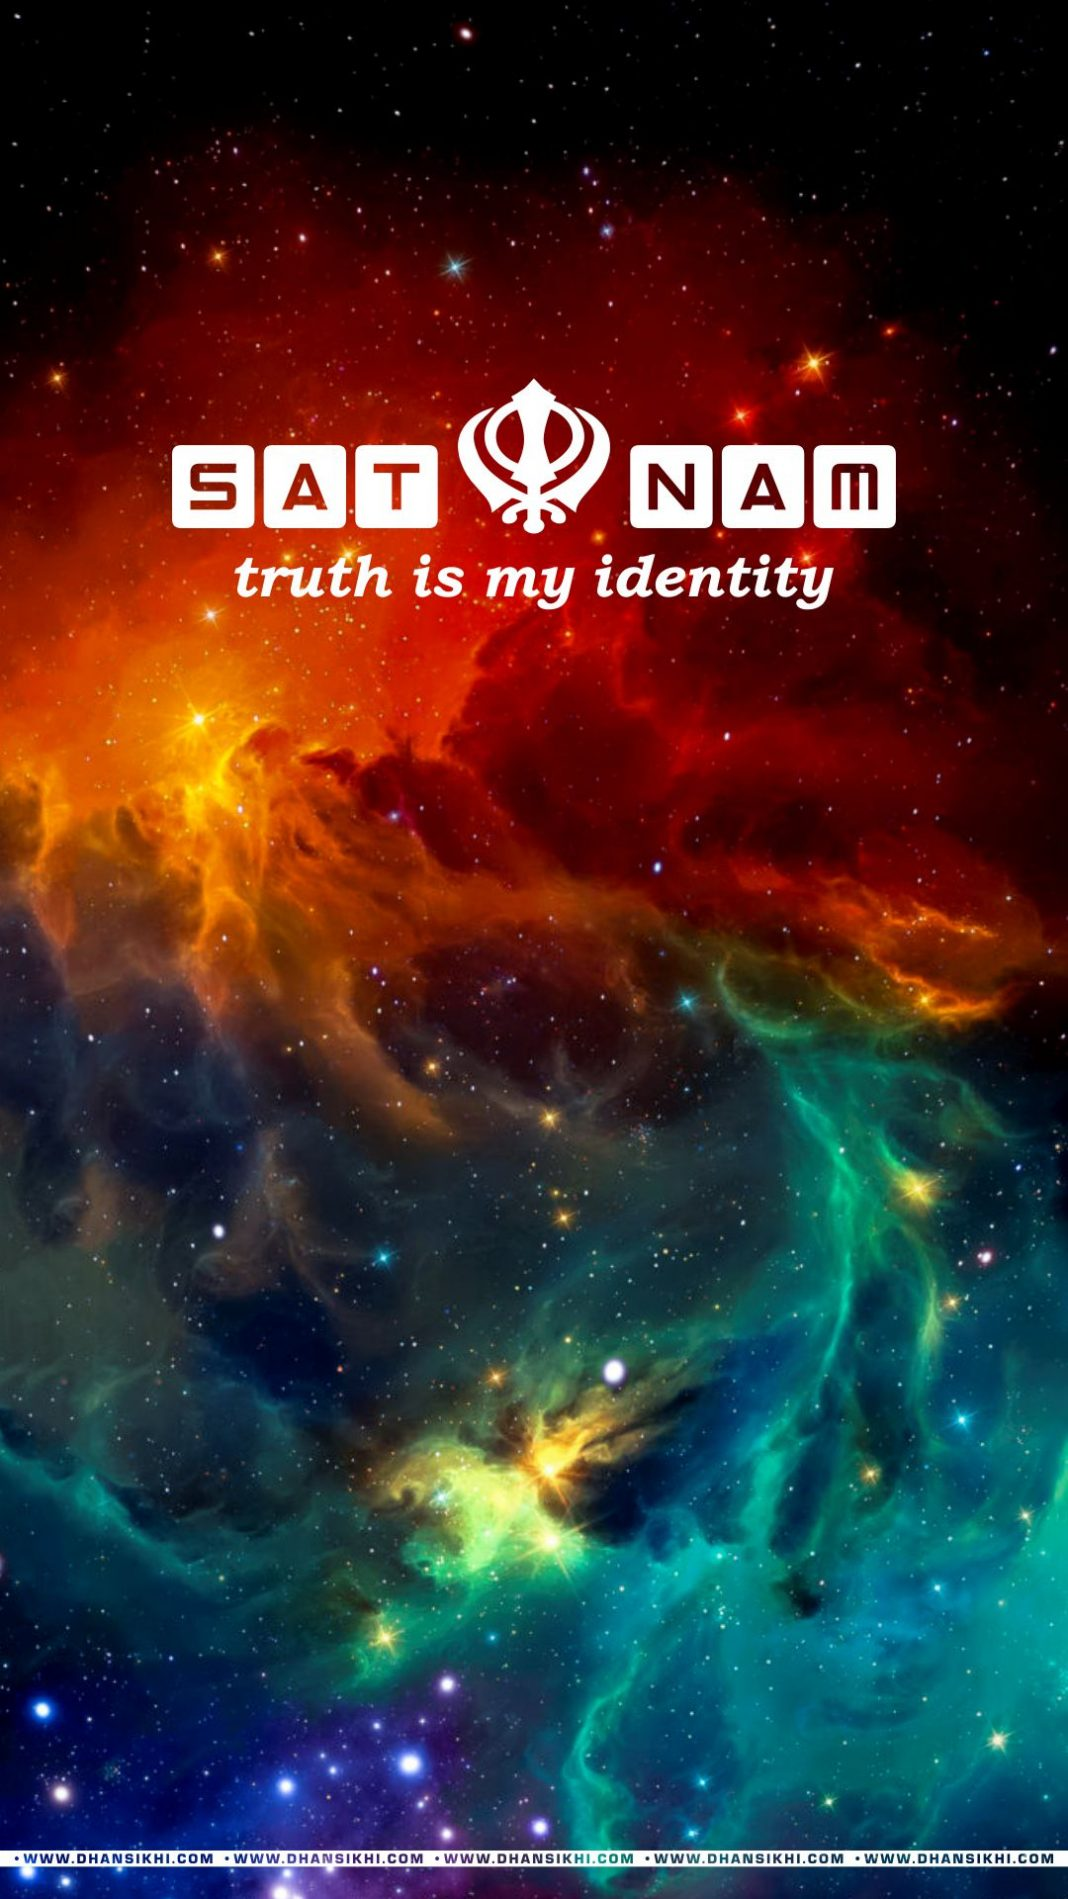 Mobile Wallpaper - Satnam Truth My Identity